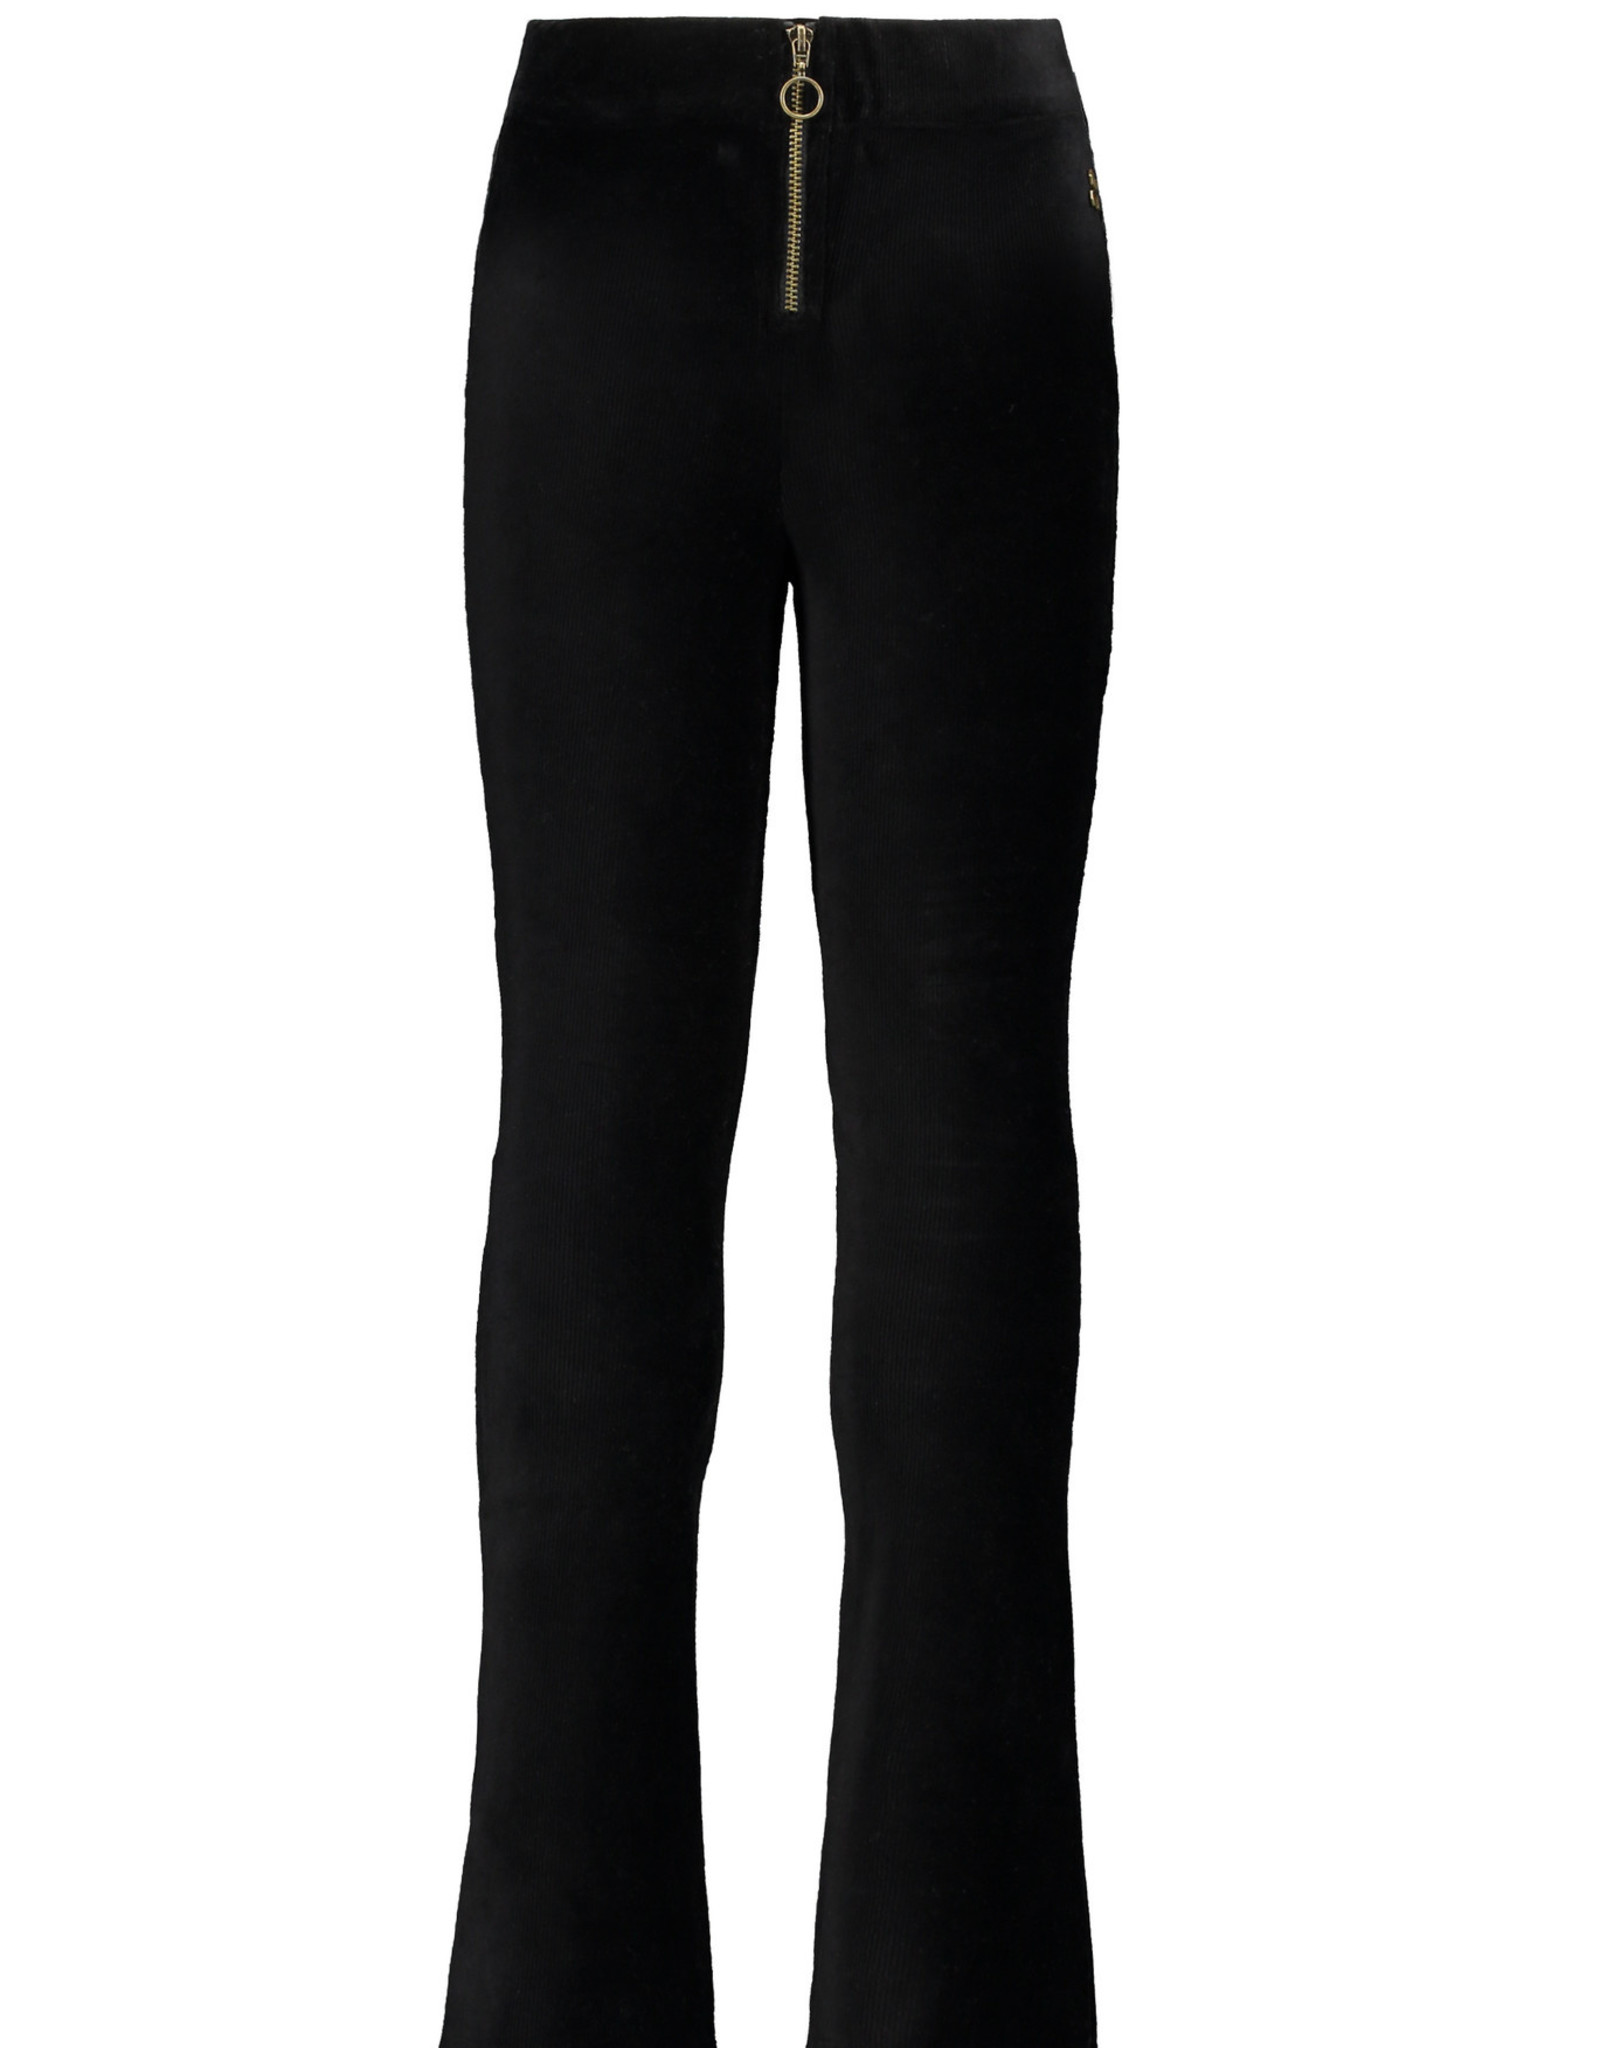 Street Called Madison SCM flared pants 5602-098 RUBY